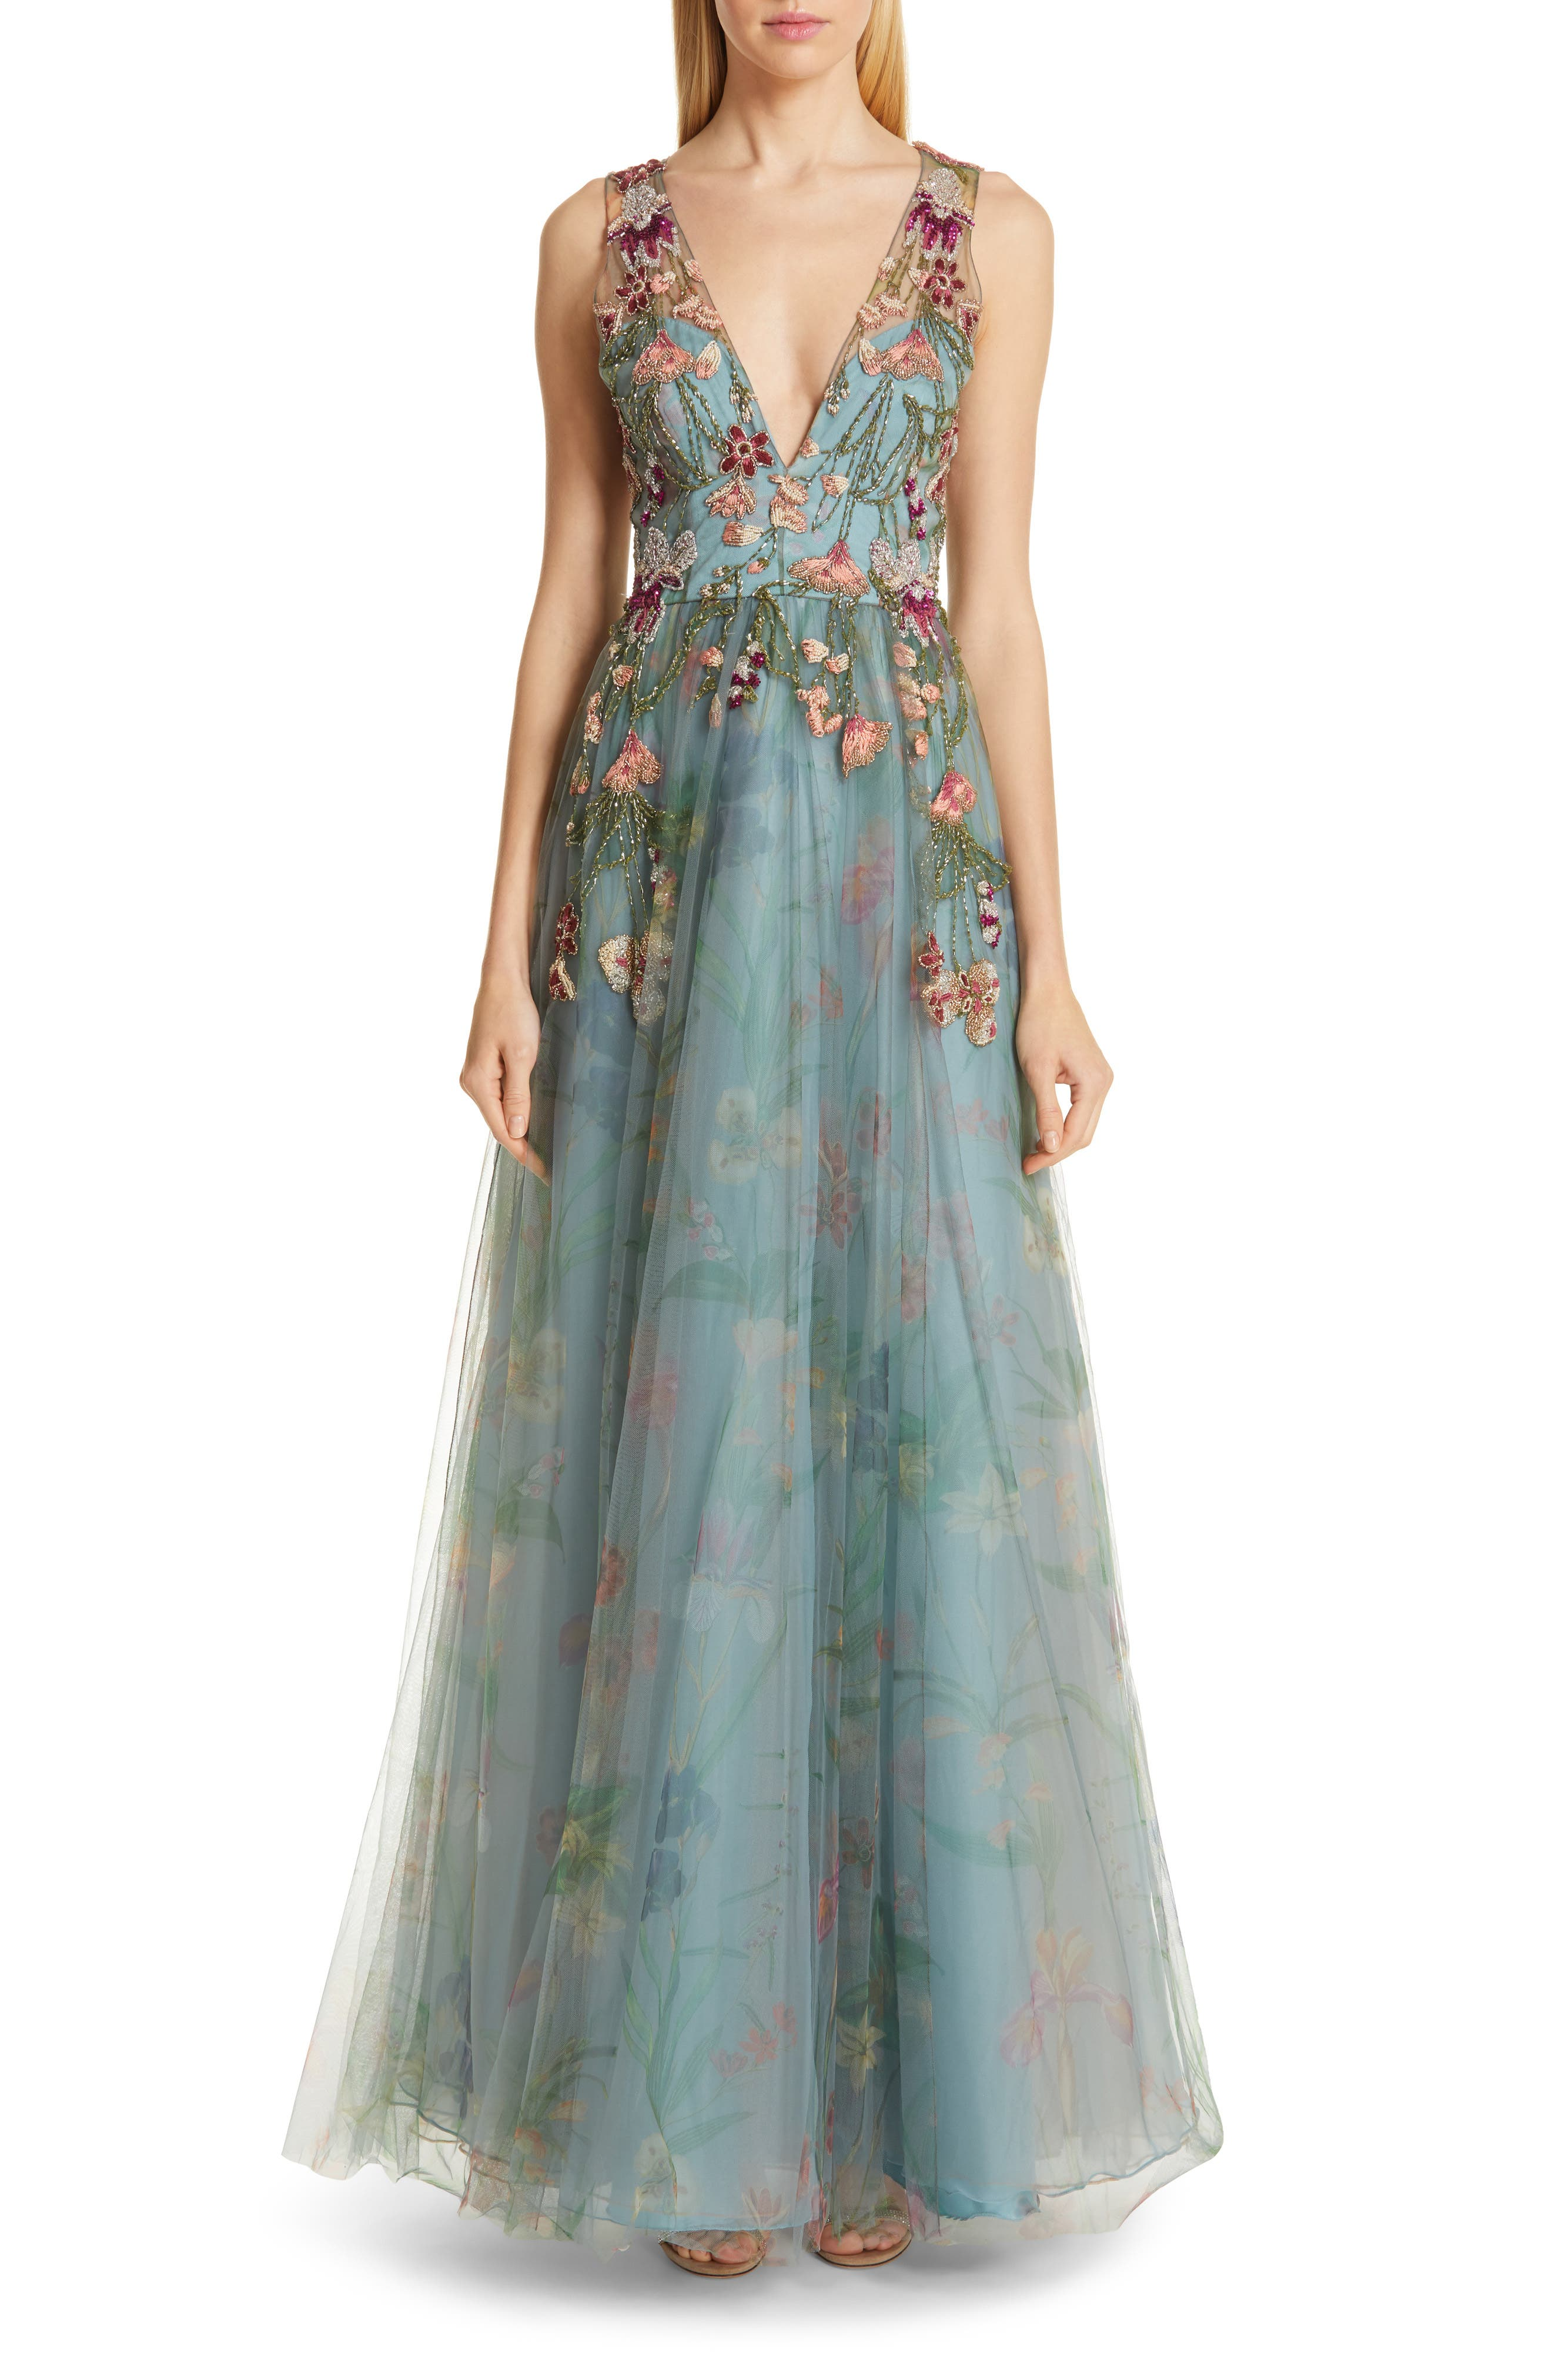 Patbo Beaded Floral Print Tulle Ballgown, 8 BR - Green